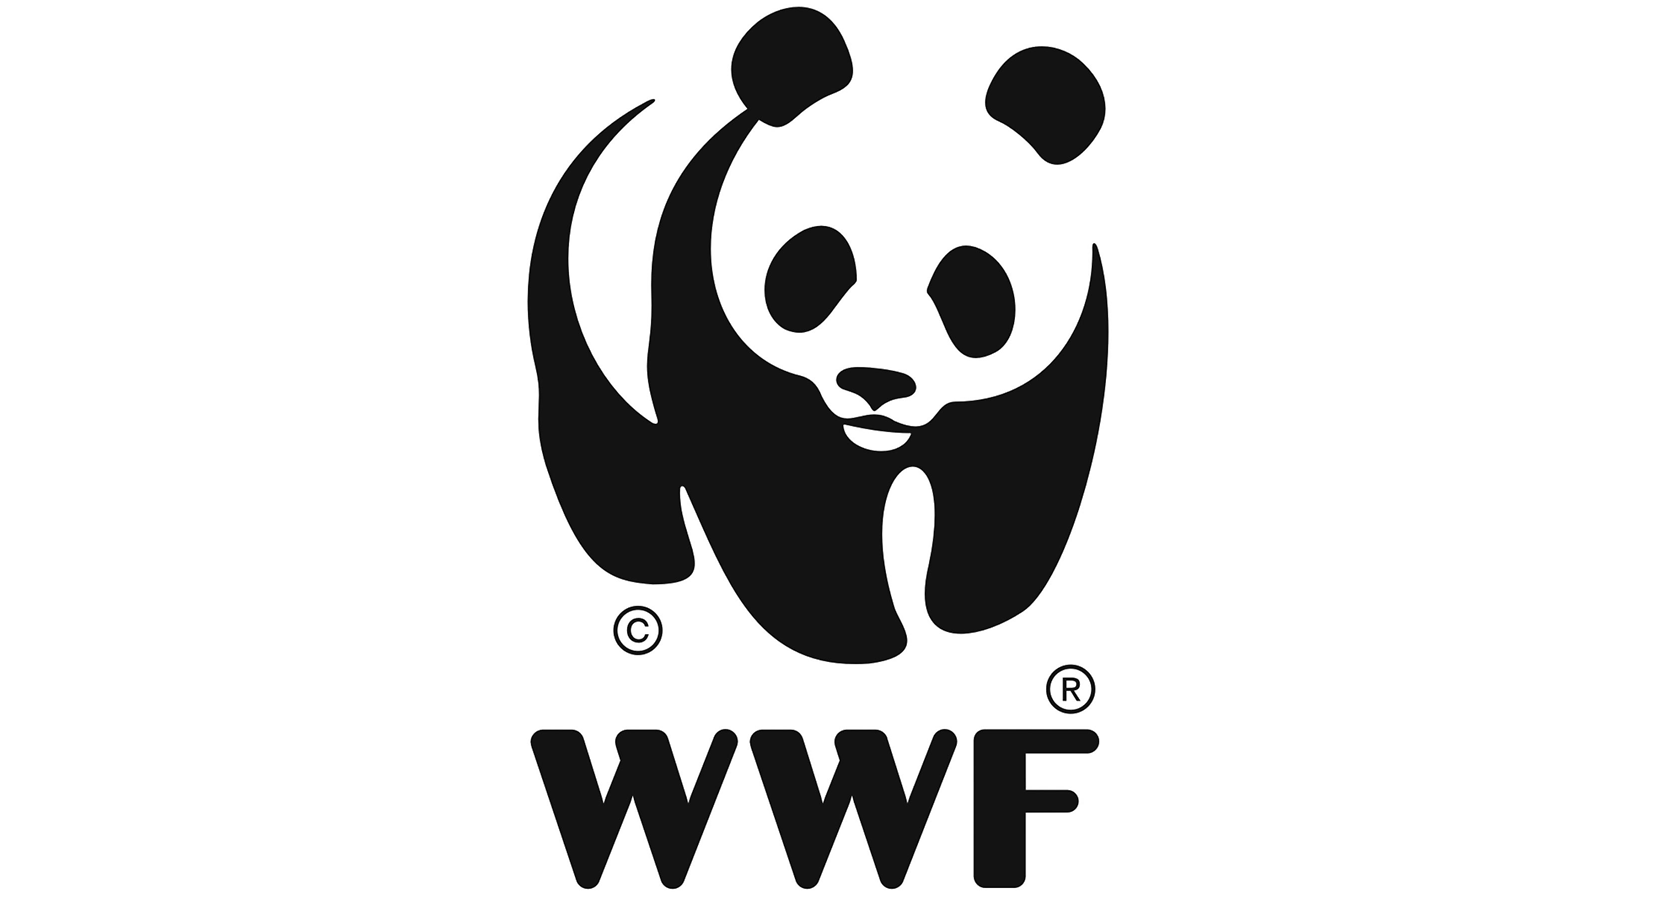 the logo for the world wildlife fund is an example of the gestalt principle of closure